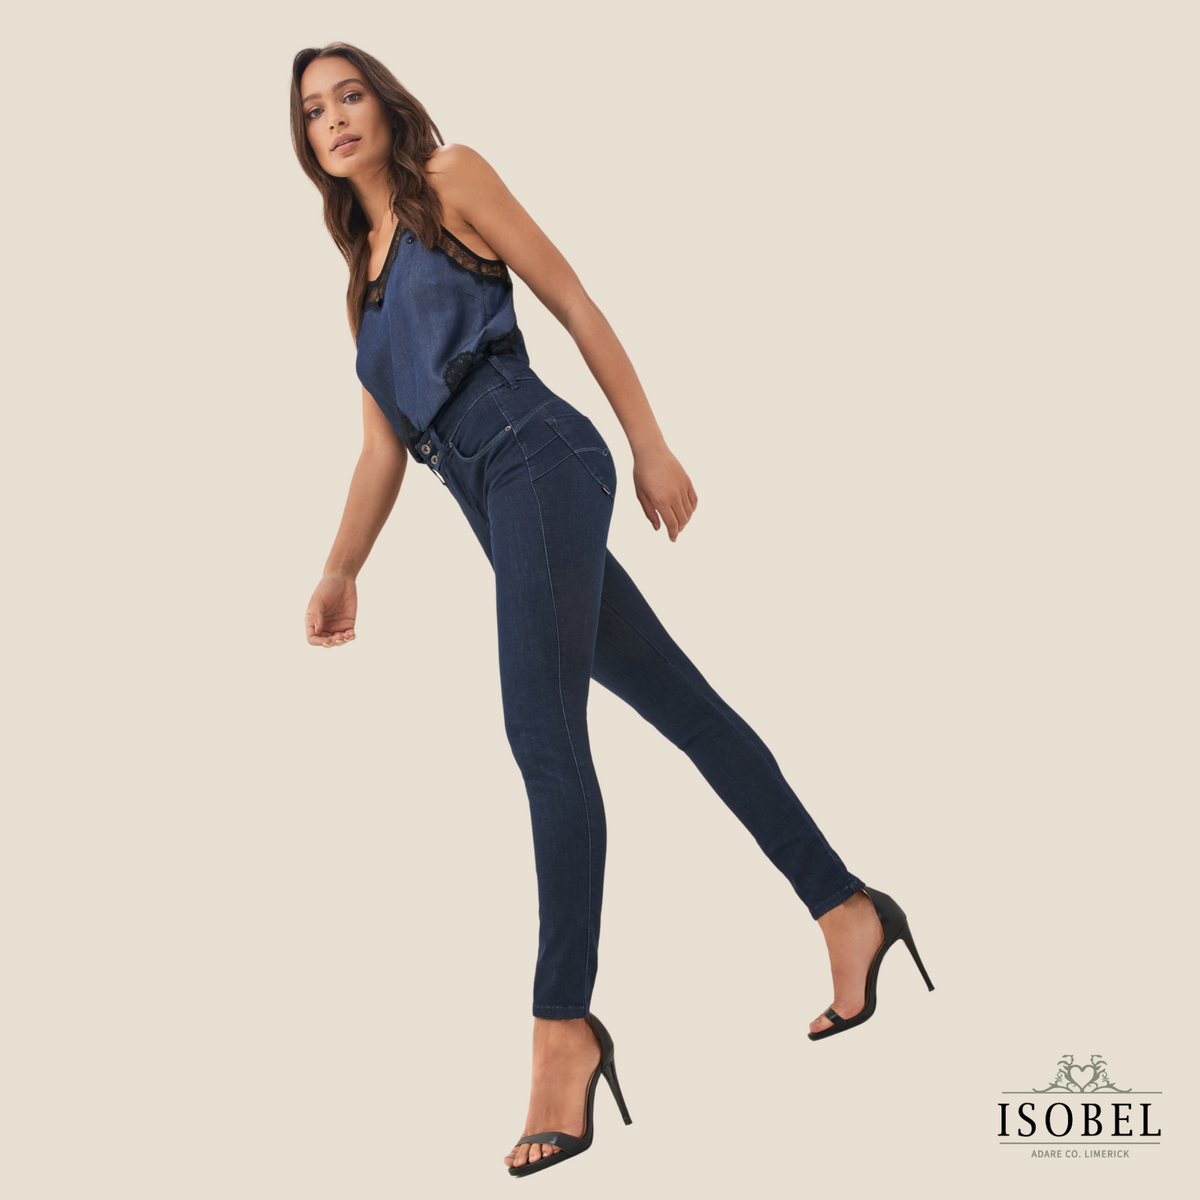 Isobel online store Adare Limerick Ireland Fee G Mother of the Bride Exclusive